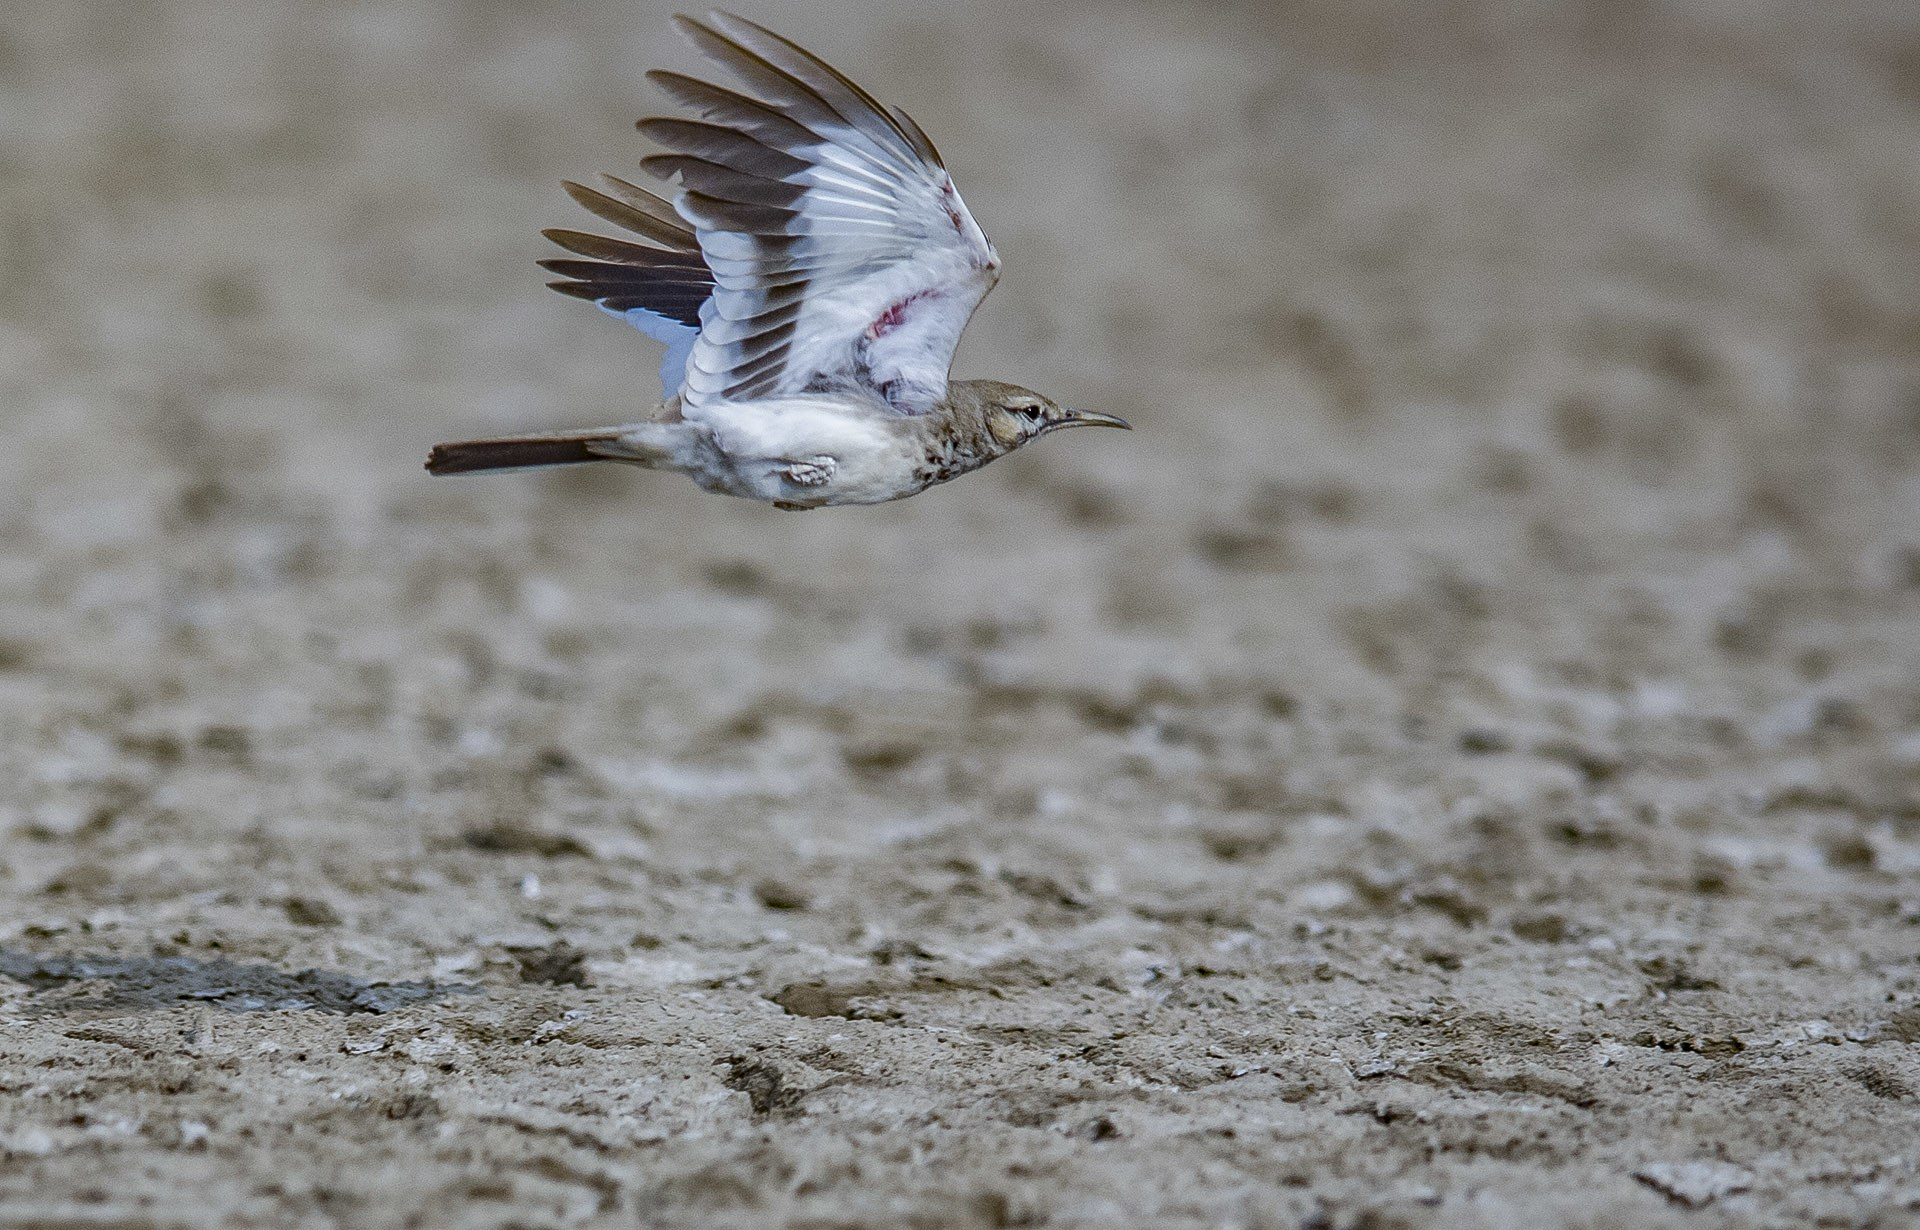 Spotting a greater hoopoe lark is not easy as it camouflages perfectly with its arid surroundings. You often only see them when they are in flight, once they reveal their striking black and white wings.